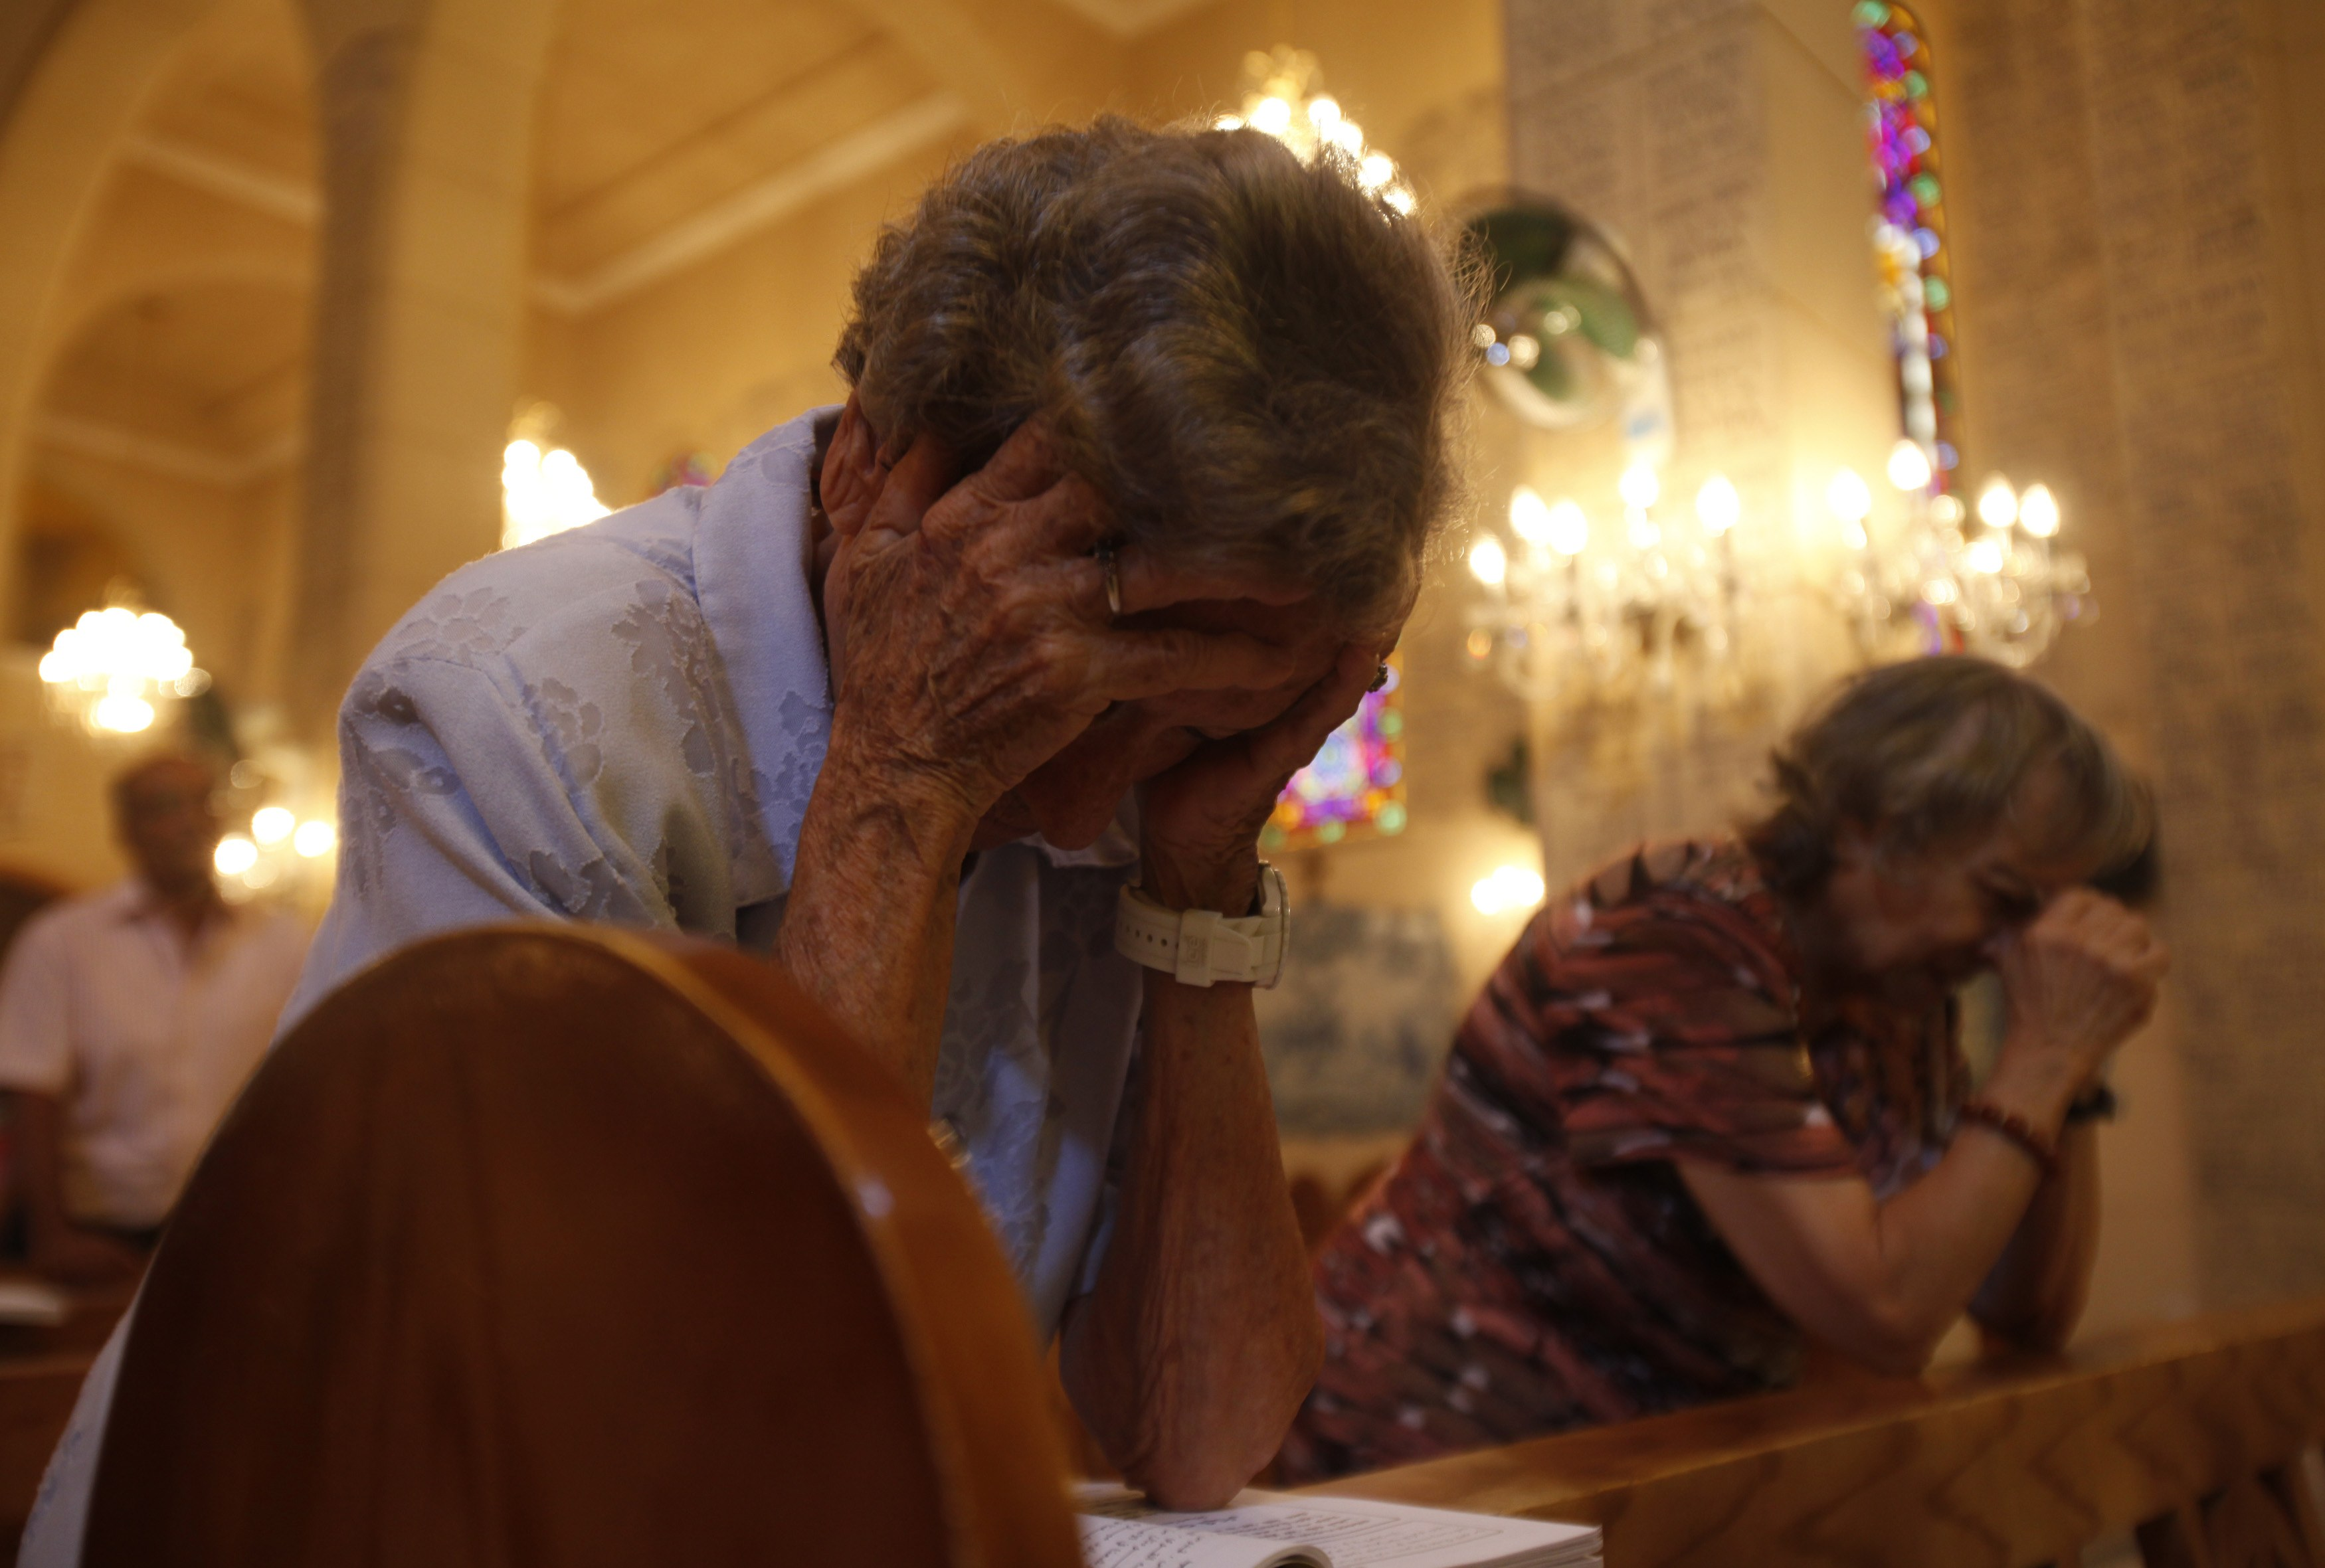 Worshippers pray in Basilica of Our Lady of Fatima in Cairo